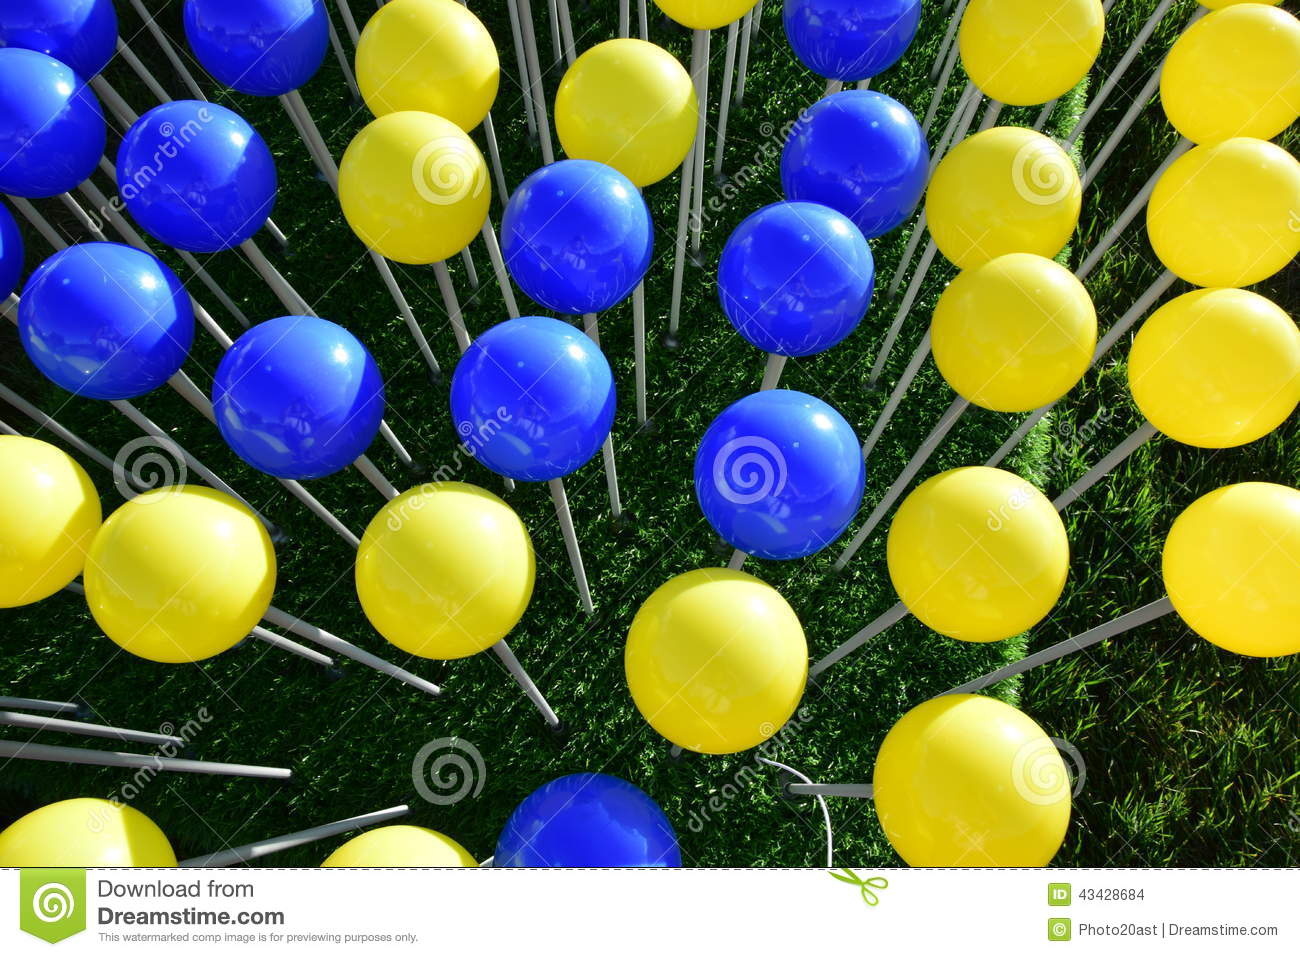 blue and yellow balloons stock photo image of decorative 43428684. Black Bedroom Furniture Sets. Home Design Ideas